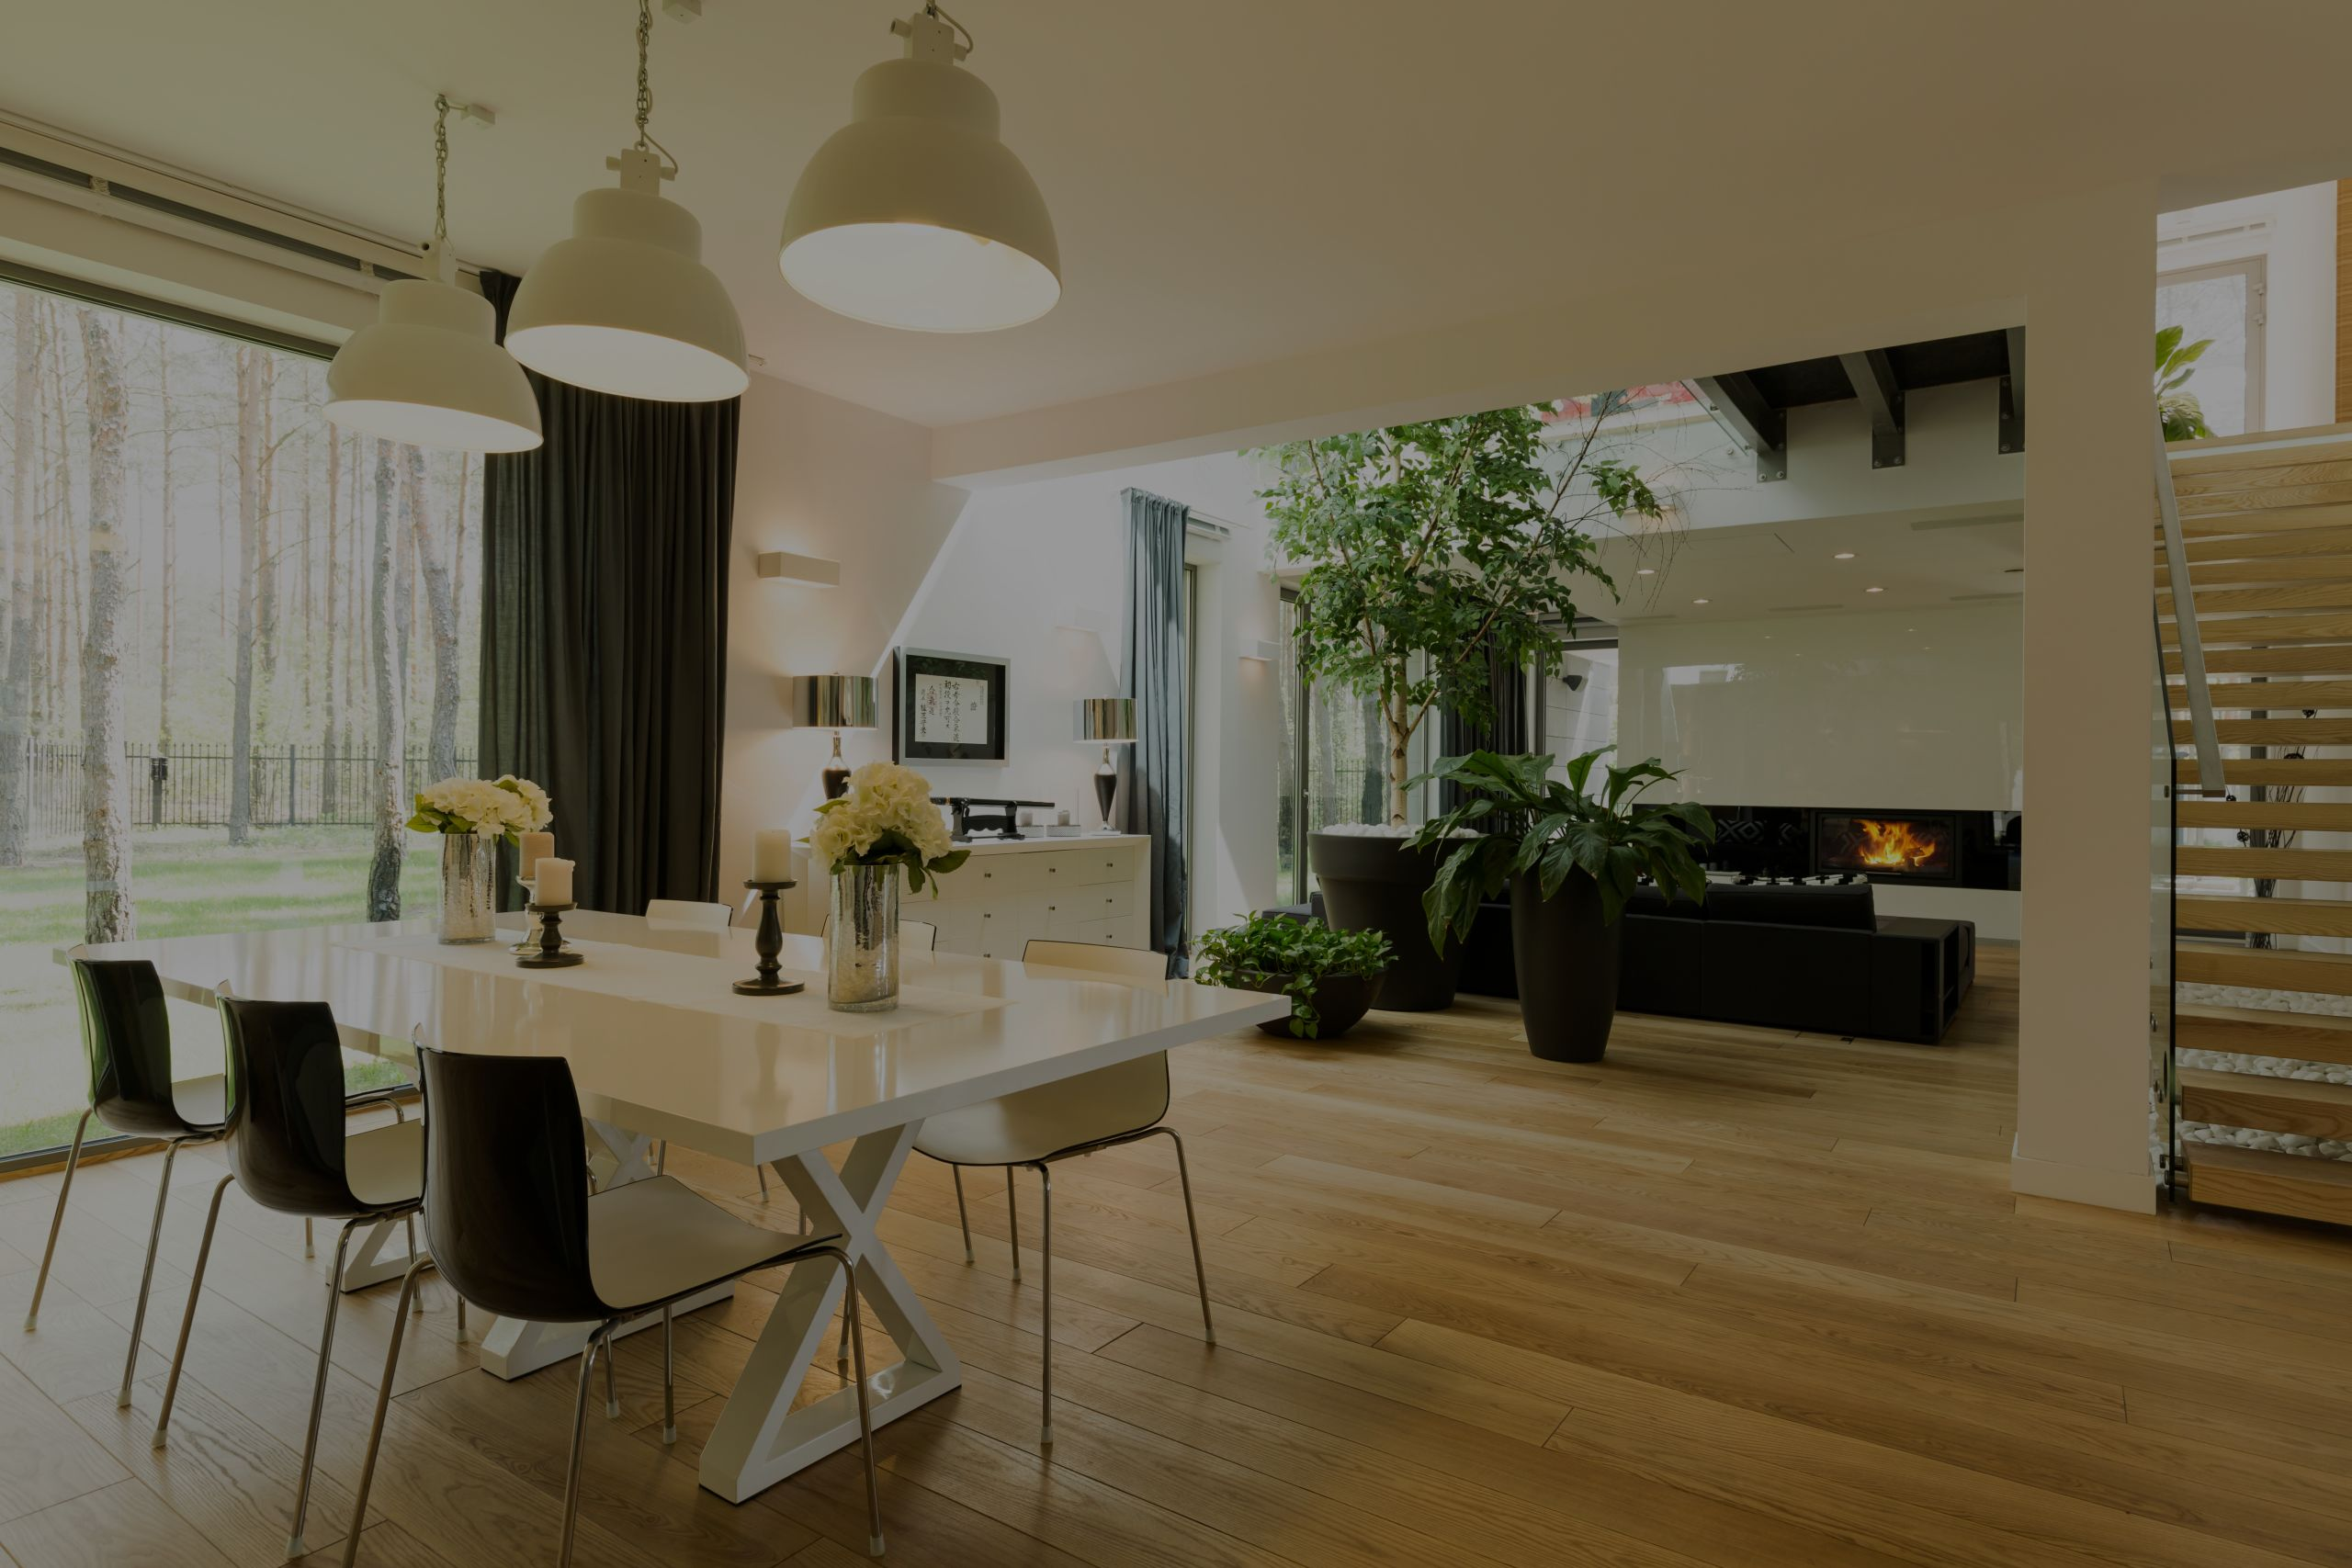 THE LATEST IN HOME AMENITIES THAT HOME BUYERS WANT